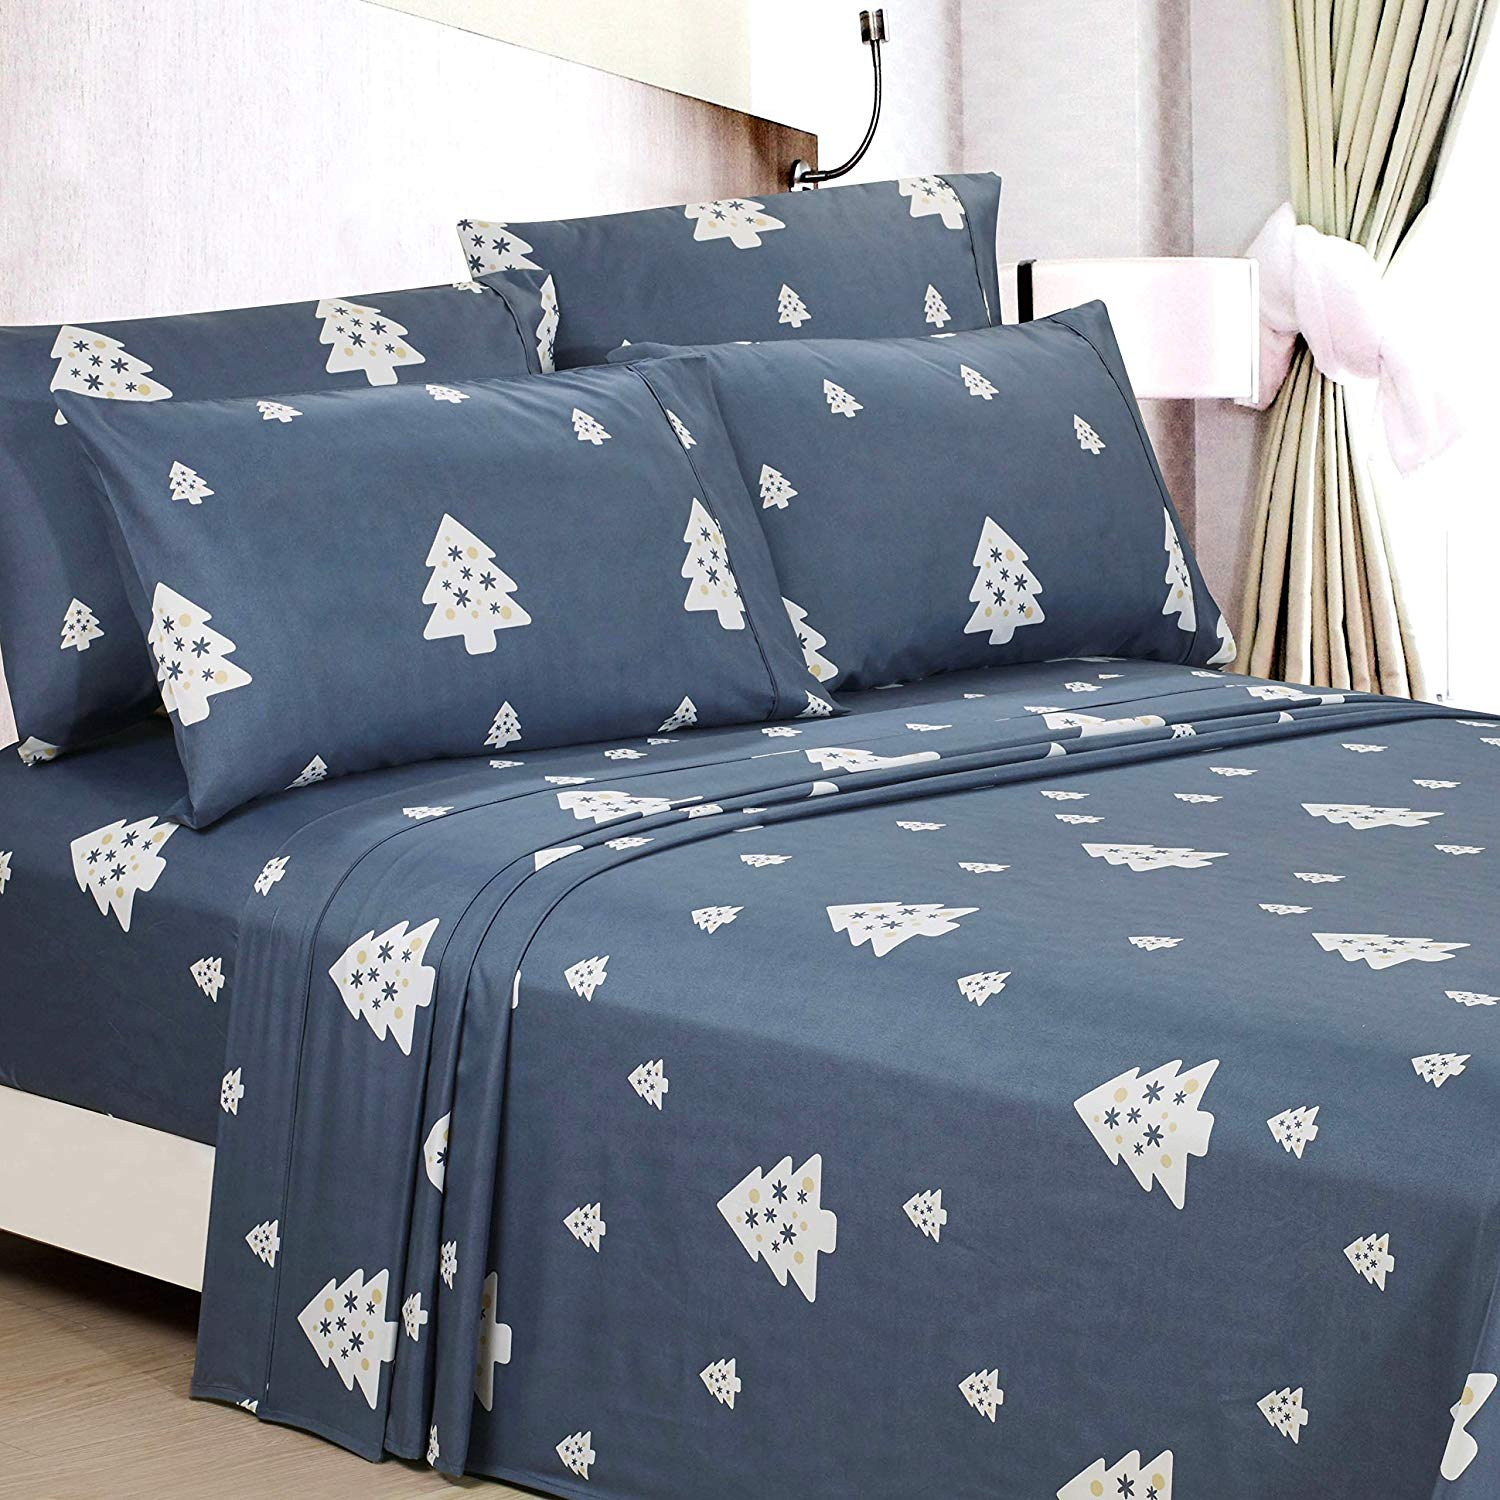 American Home Collection Christmas Tree Sheets - Best Christmas Sheets Queen Size